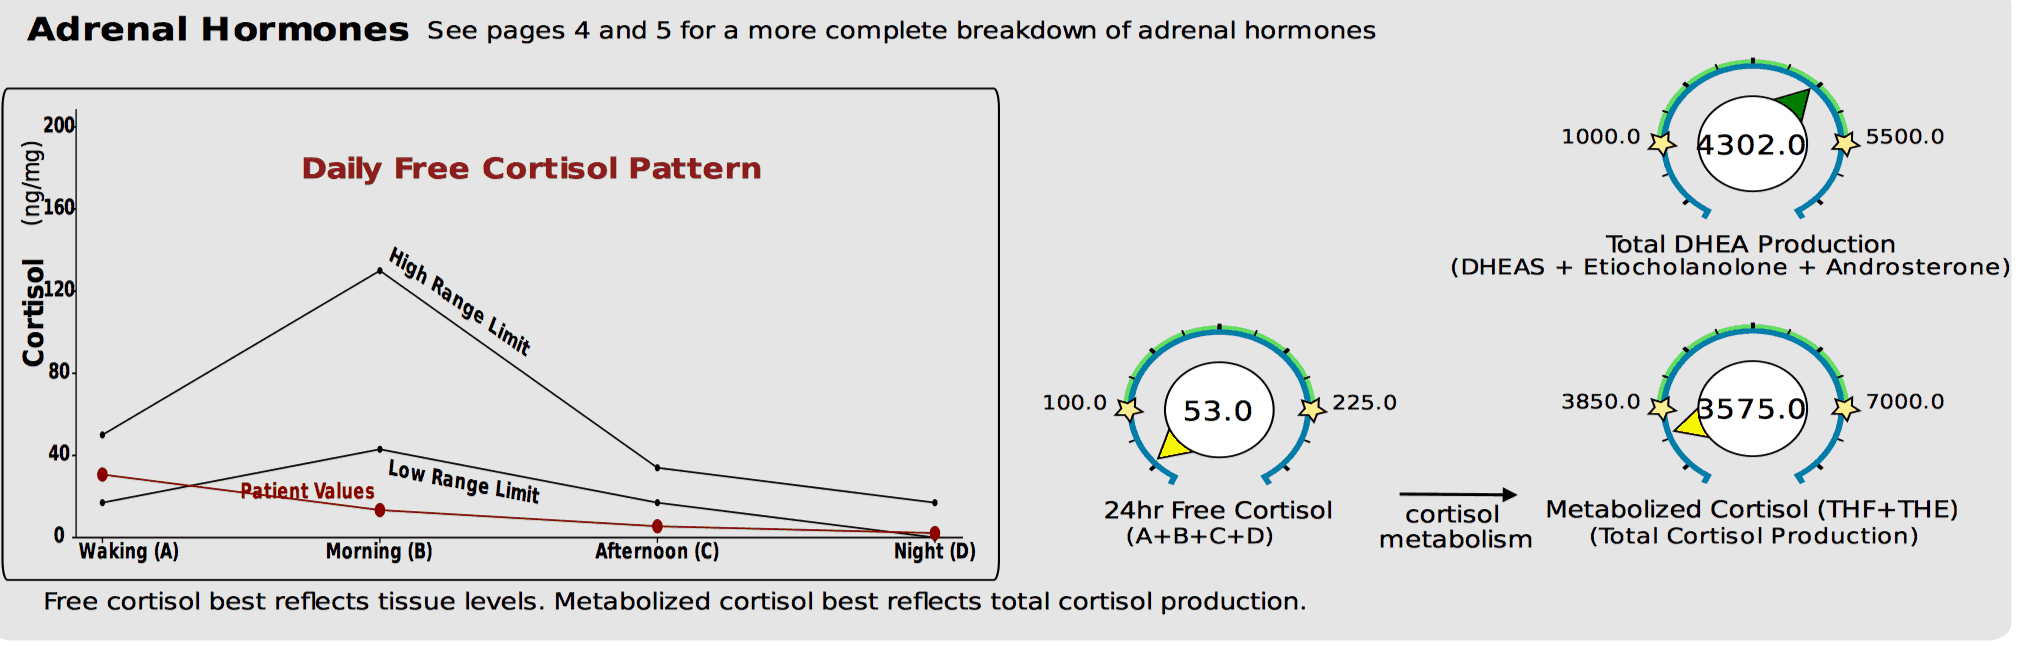 DUTCH test showing low free cortisol and low total cortisol